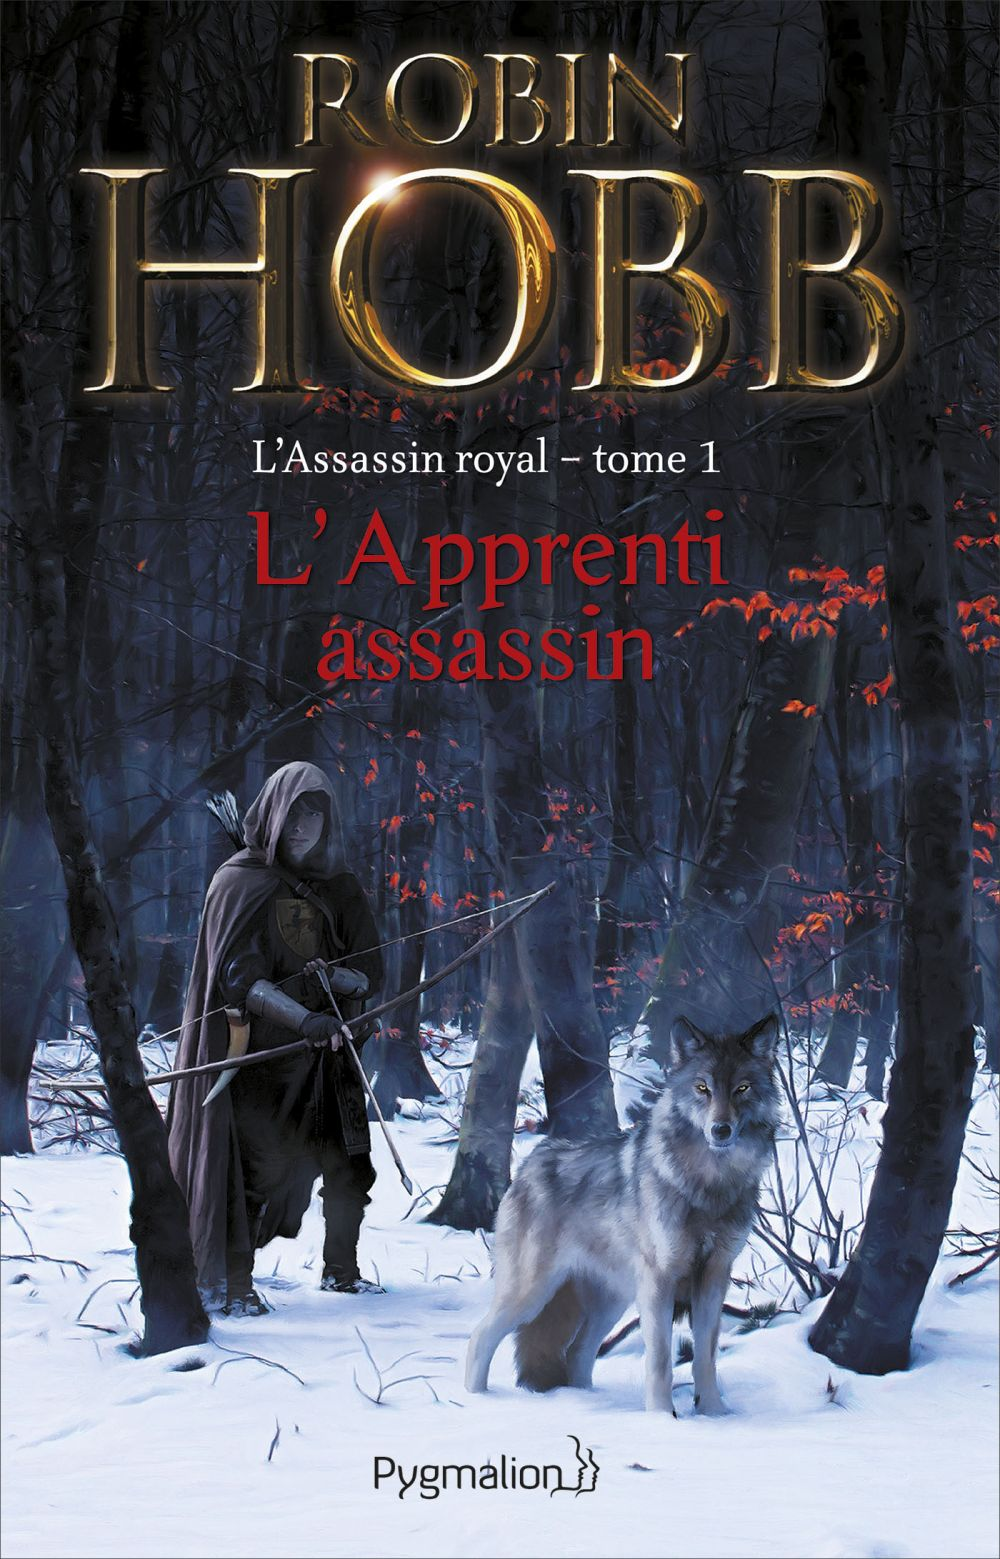 L'Assassin royal (Tome 1) - L'Apprenti assassin